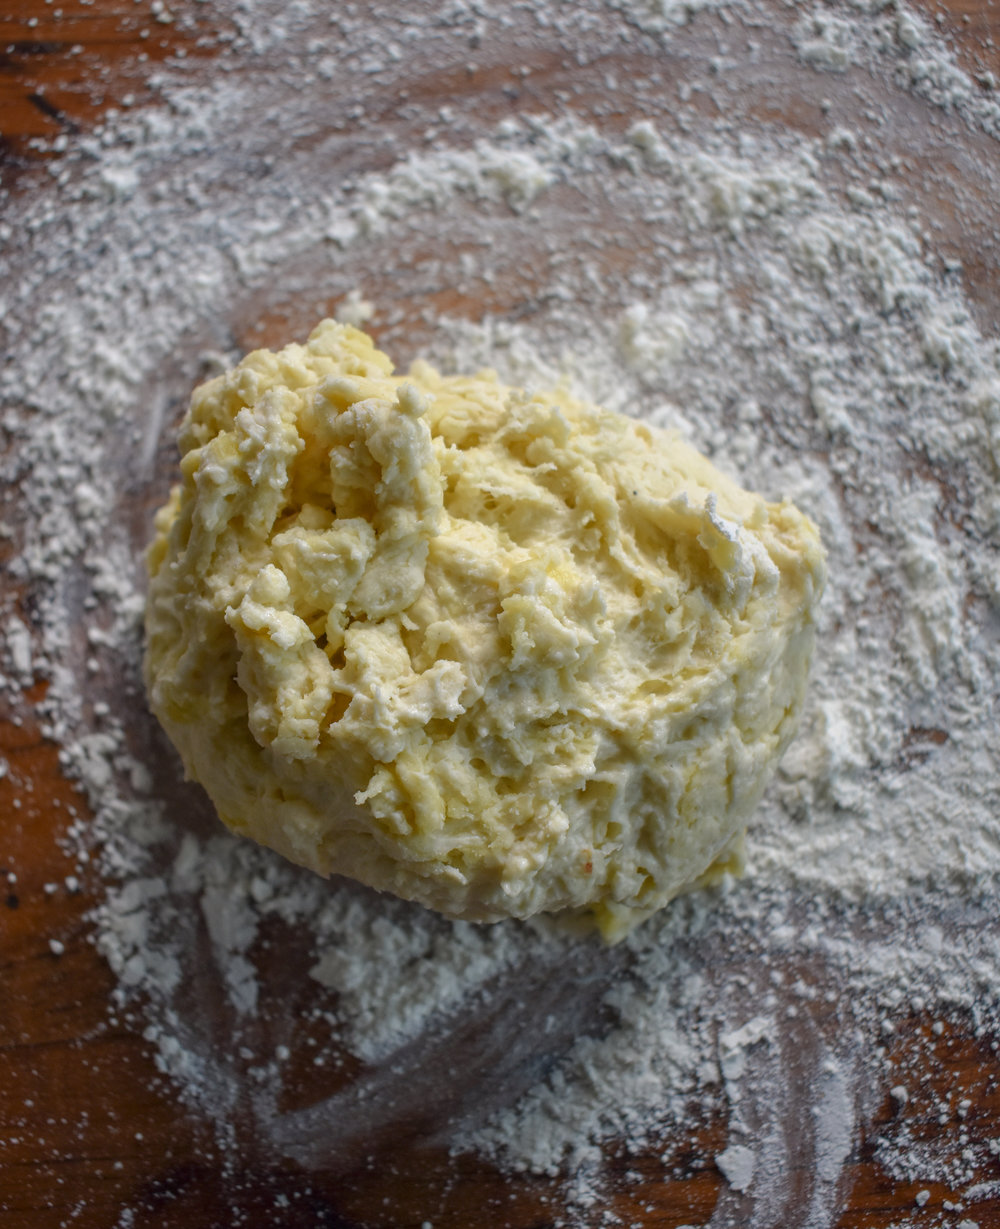 3. Add some flour to a working surface and knead your dough on the surface for 8-10 minutes until the dough is firm and elasticy (that's a word right). Place into a bowl and cover in a dark cool place for at least 30 minutes while we work on other parts of the recipe.